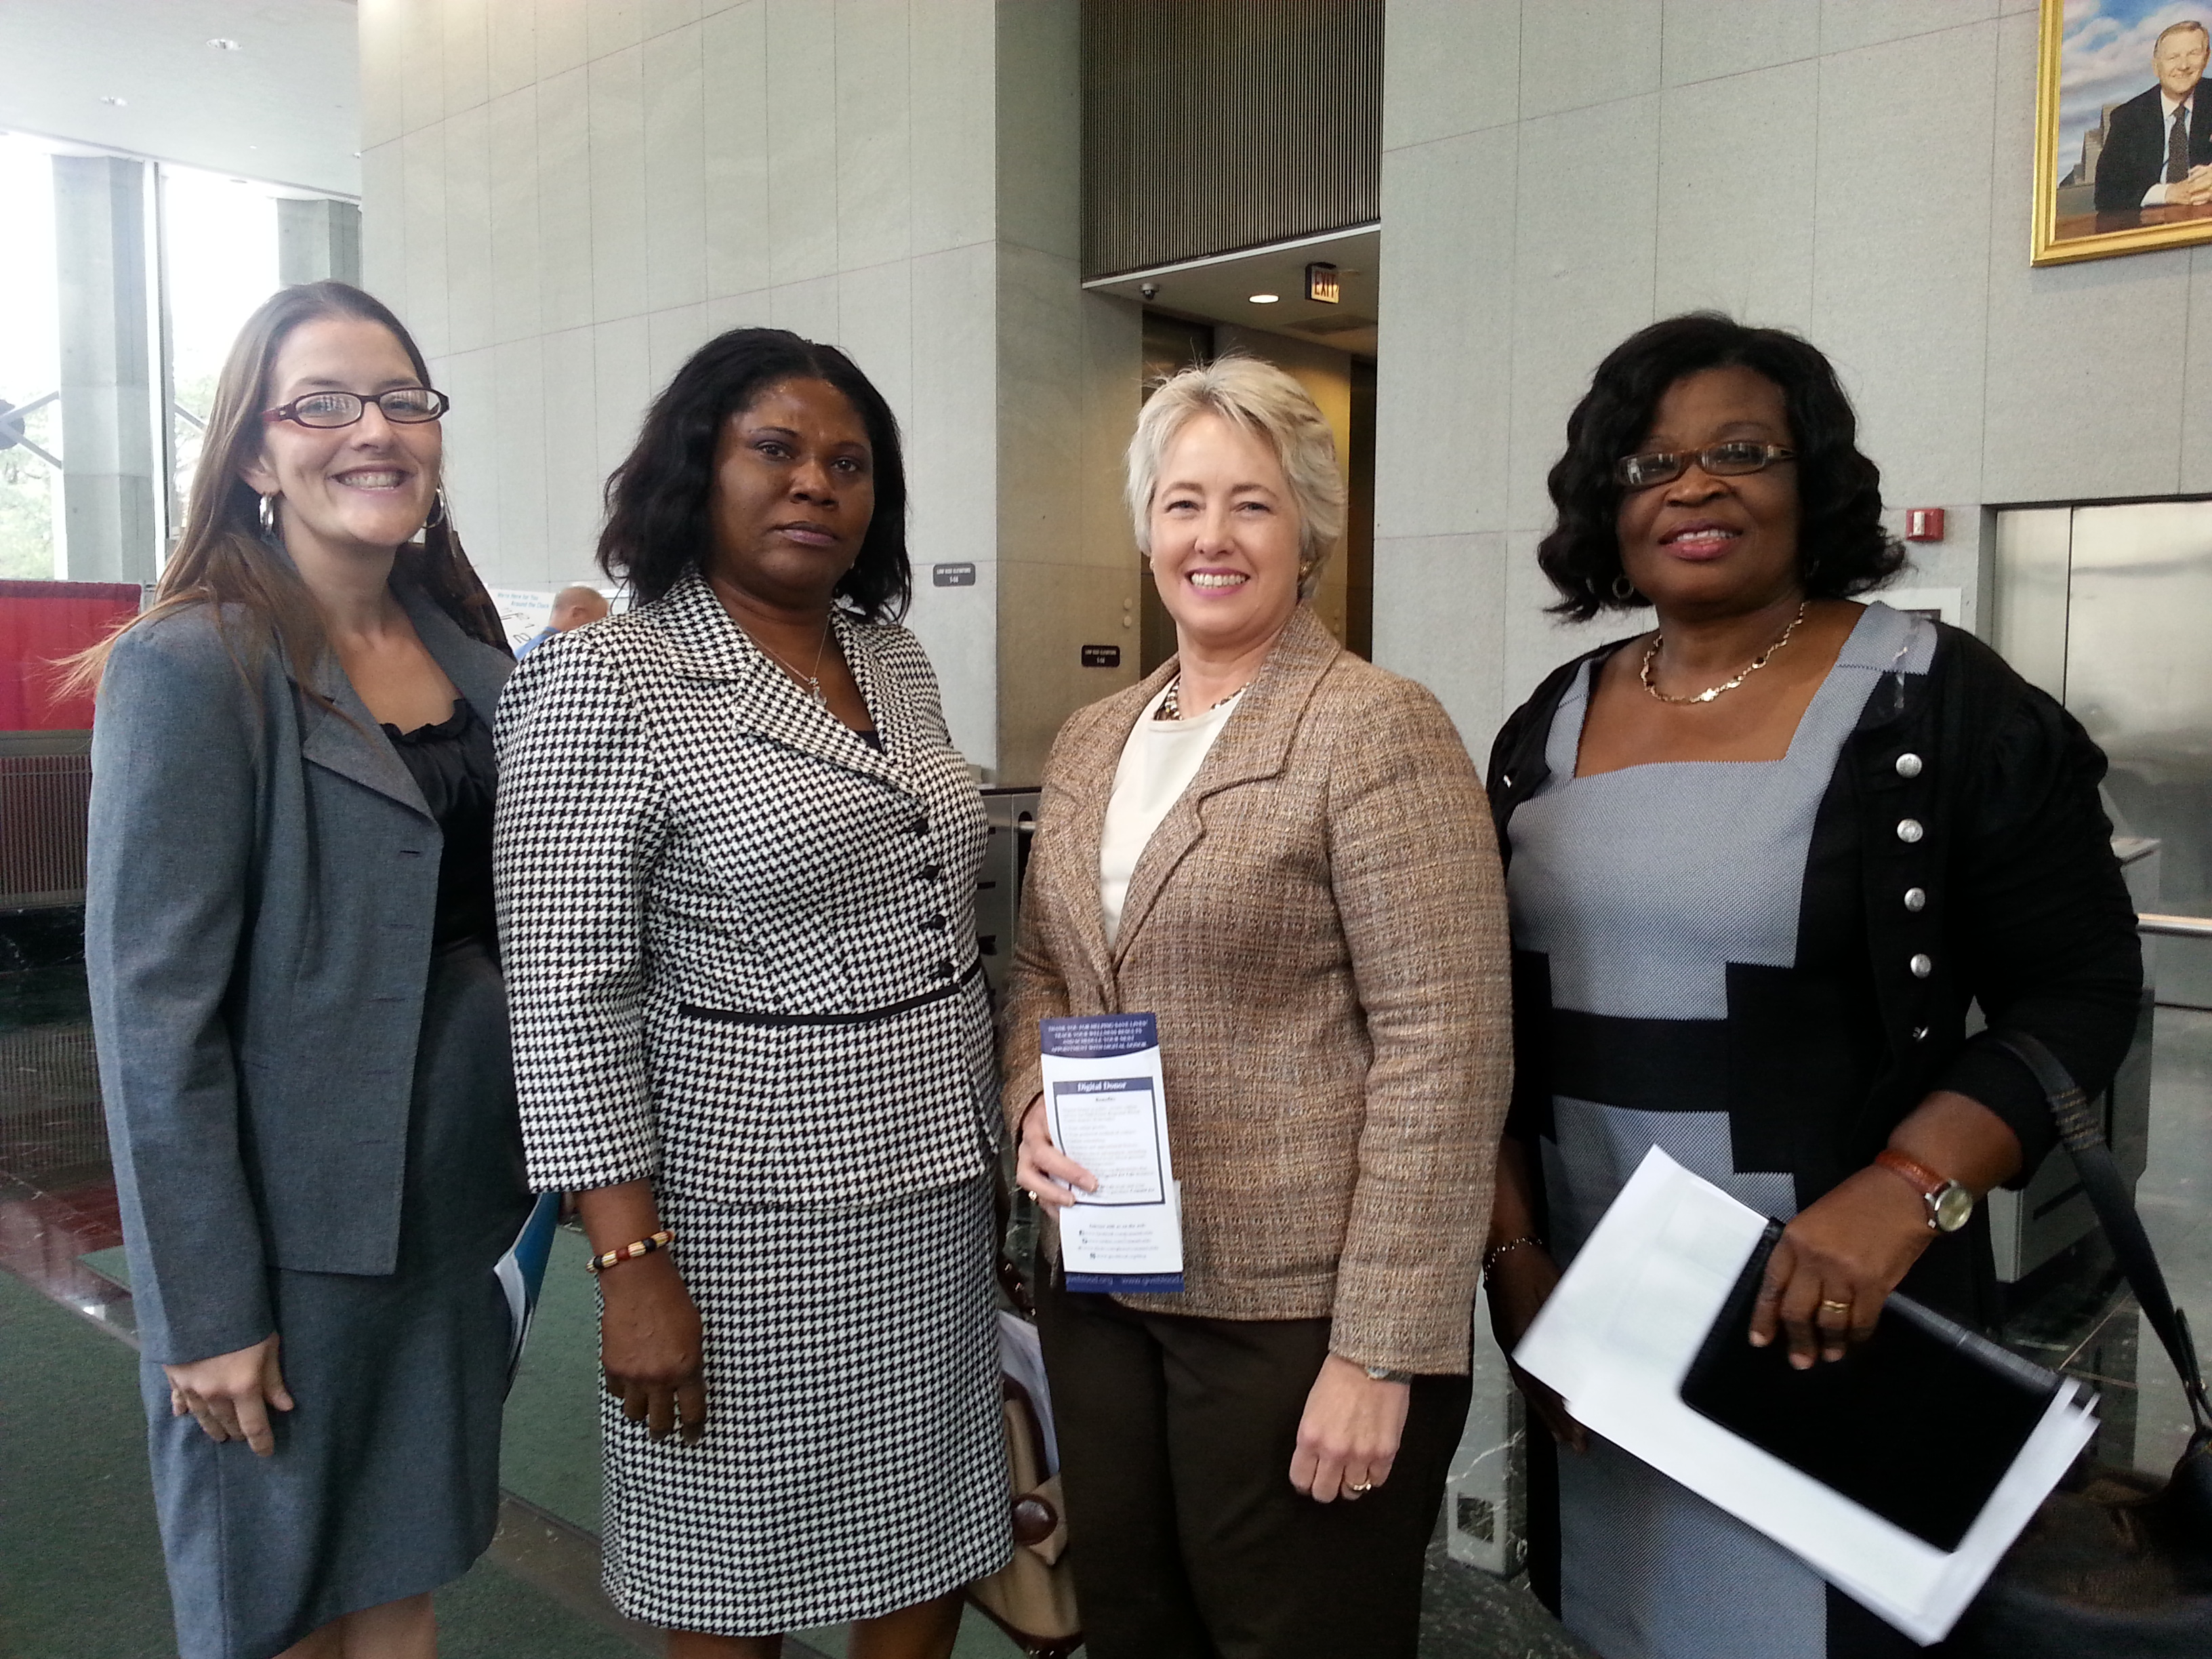 Mayor Annise Parker with Delegates from Electricity Company of Ghana and Empowerment Plus Institute 9-18-13